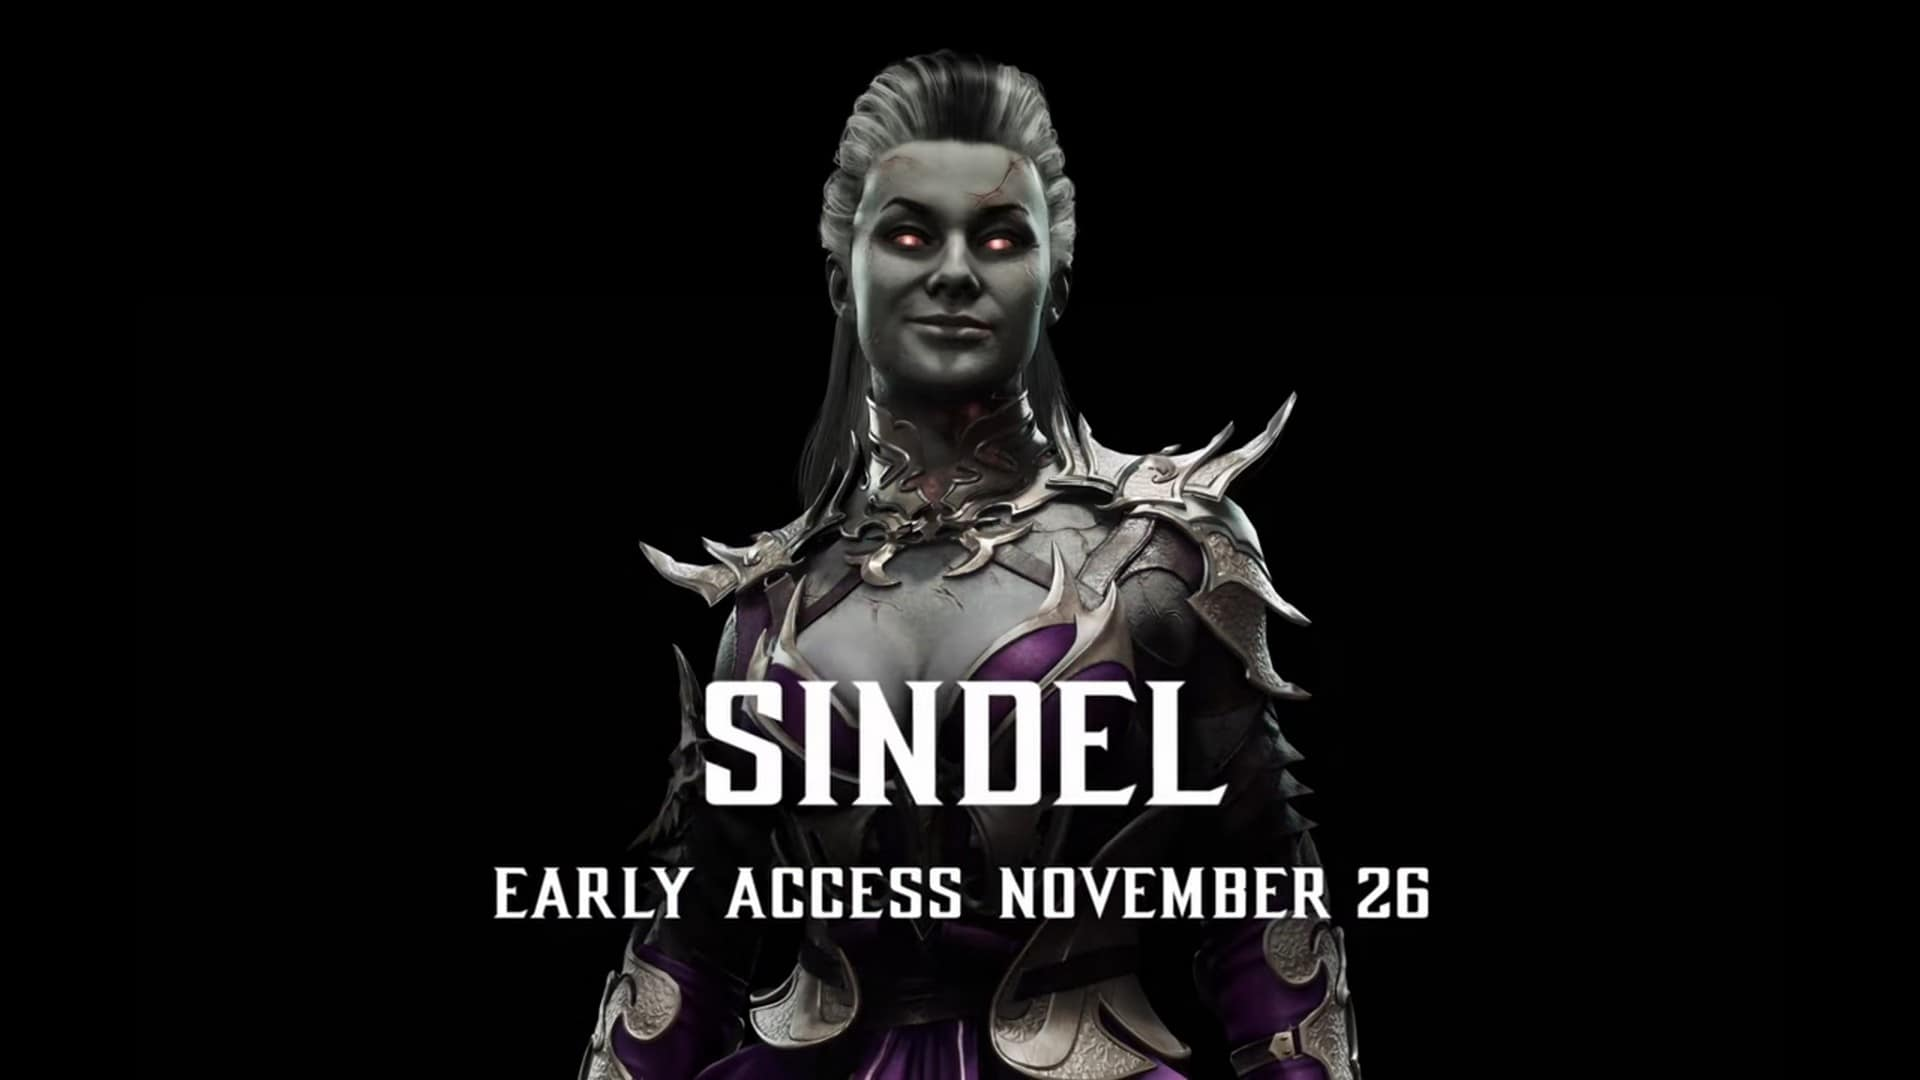 New Mortal Kombat 11 Trailer Showcases The Royal Return of Klassic Fighter – Sindel – Available Nov 26 As Part Of The Kombat Pack